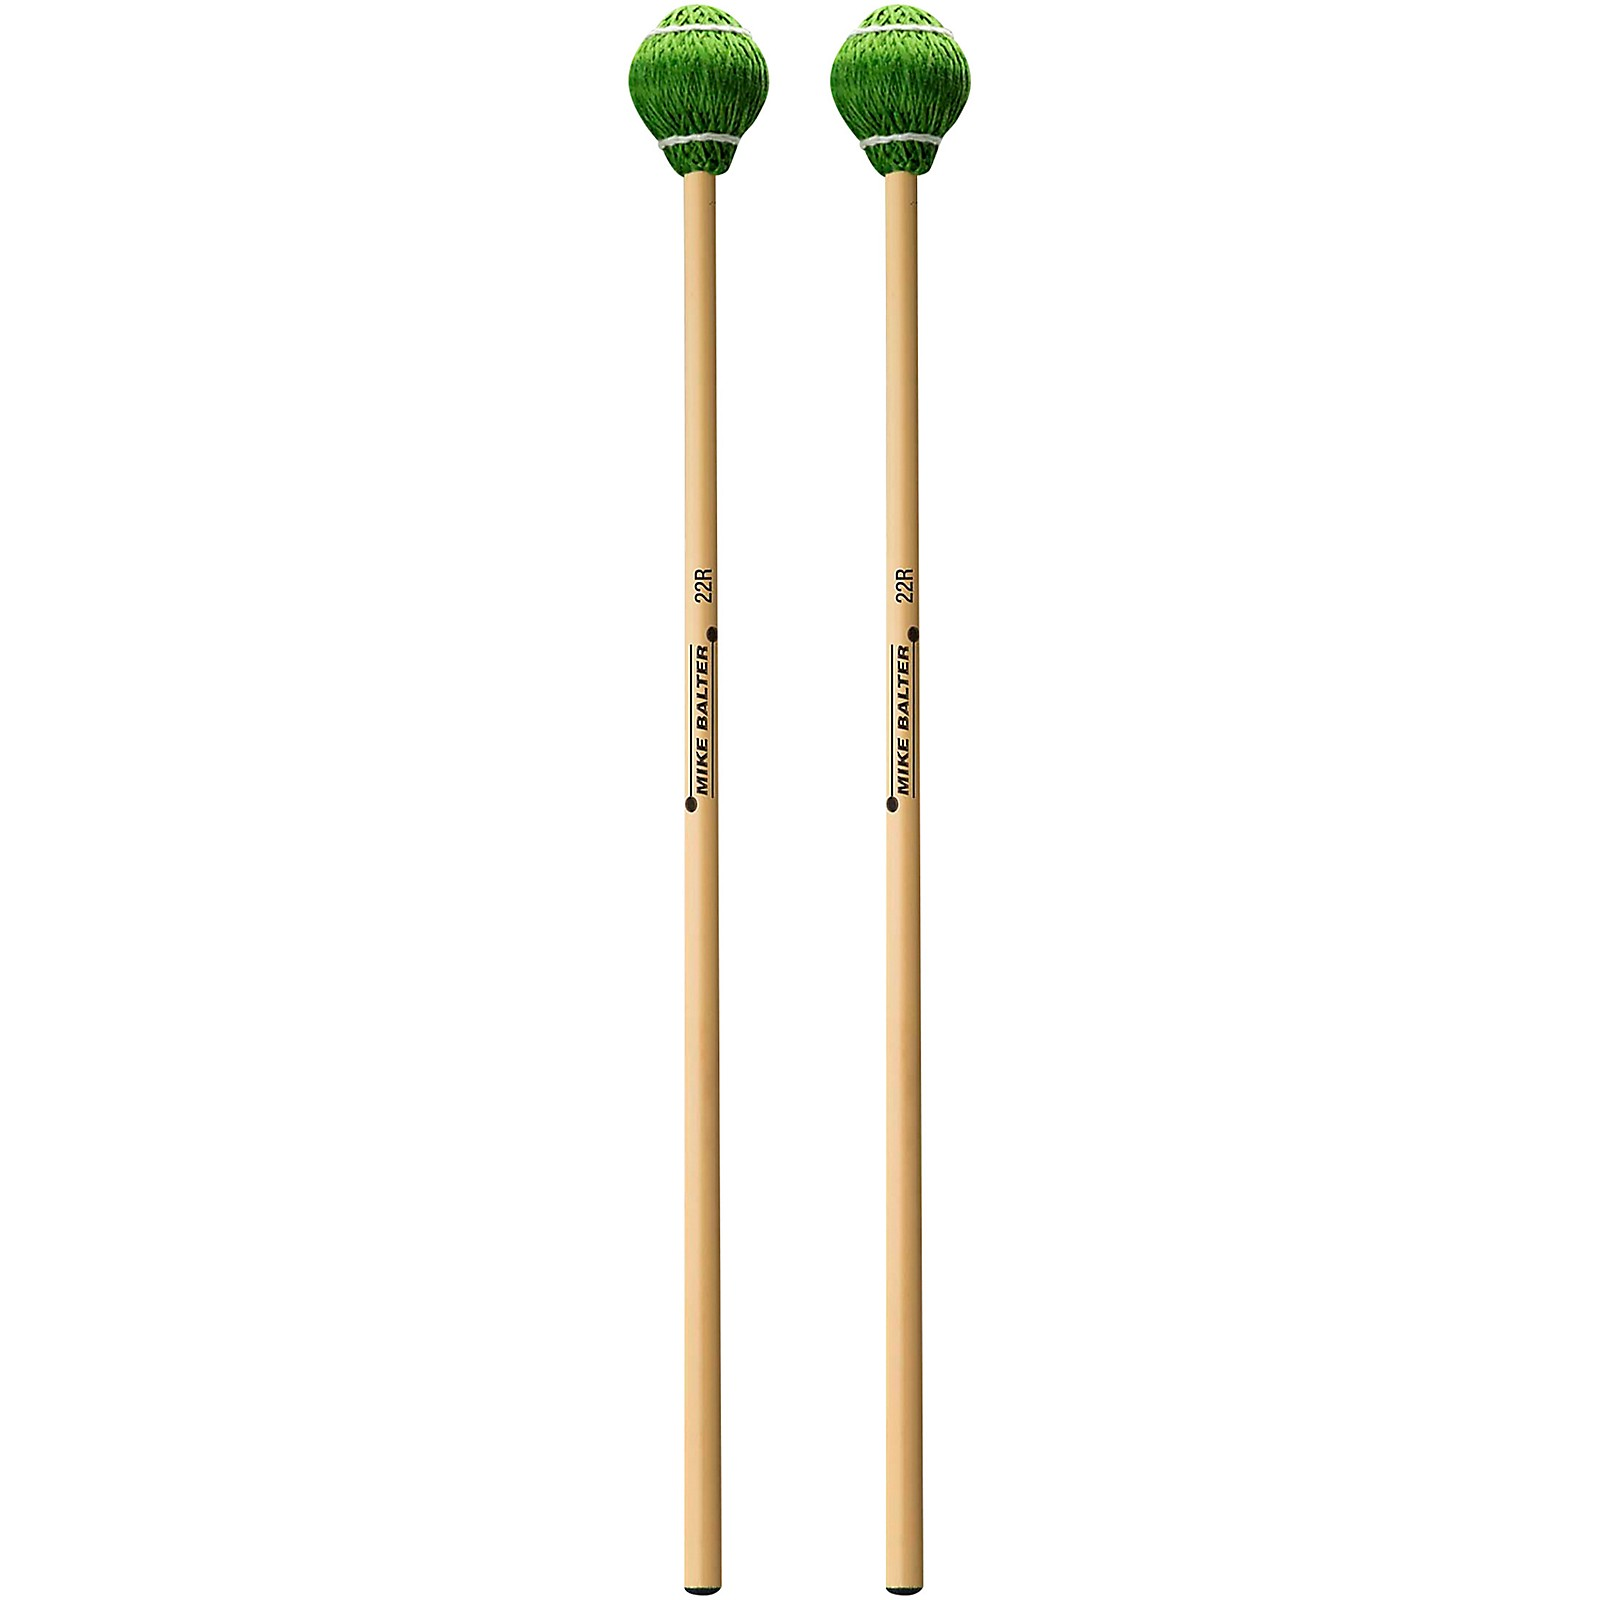 Balter Mallets Pro Vibe Series Rattan Handle Keyboard Mallets